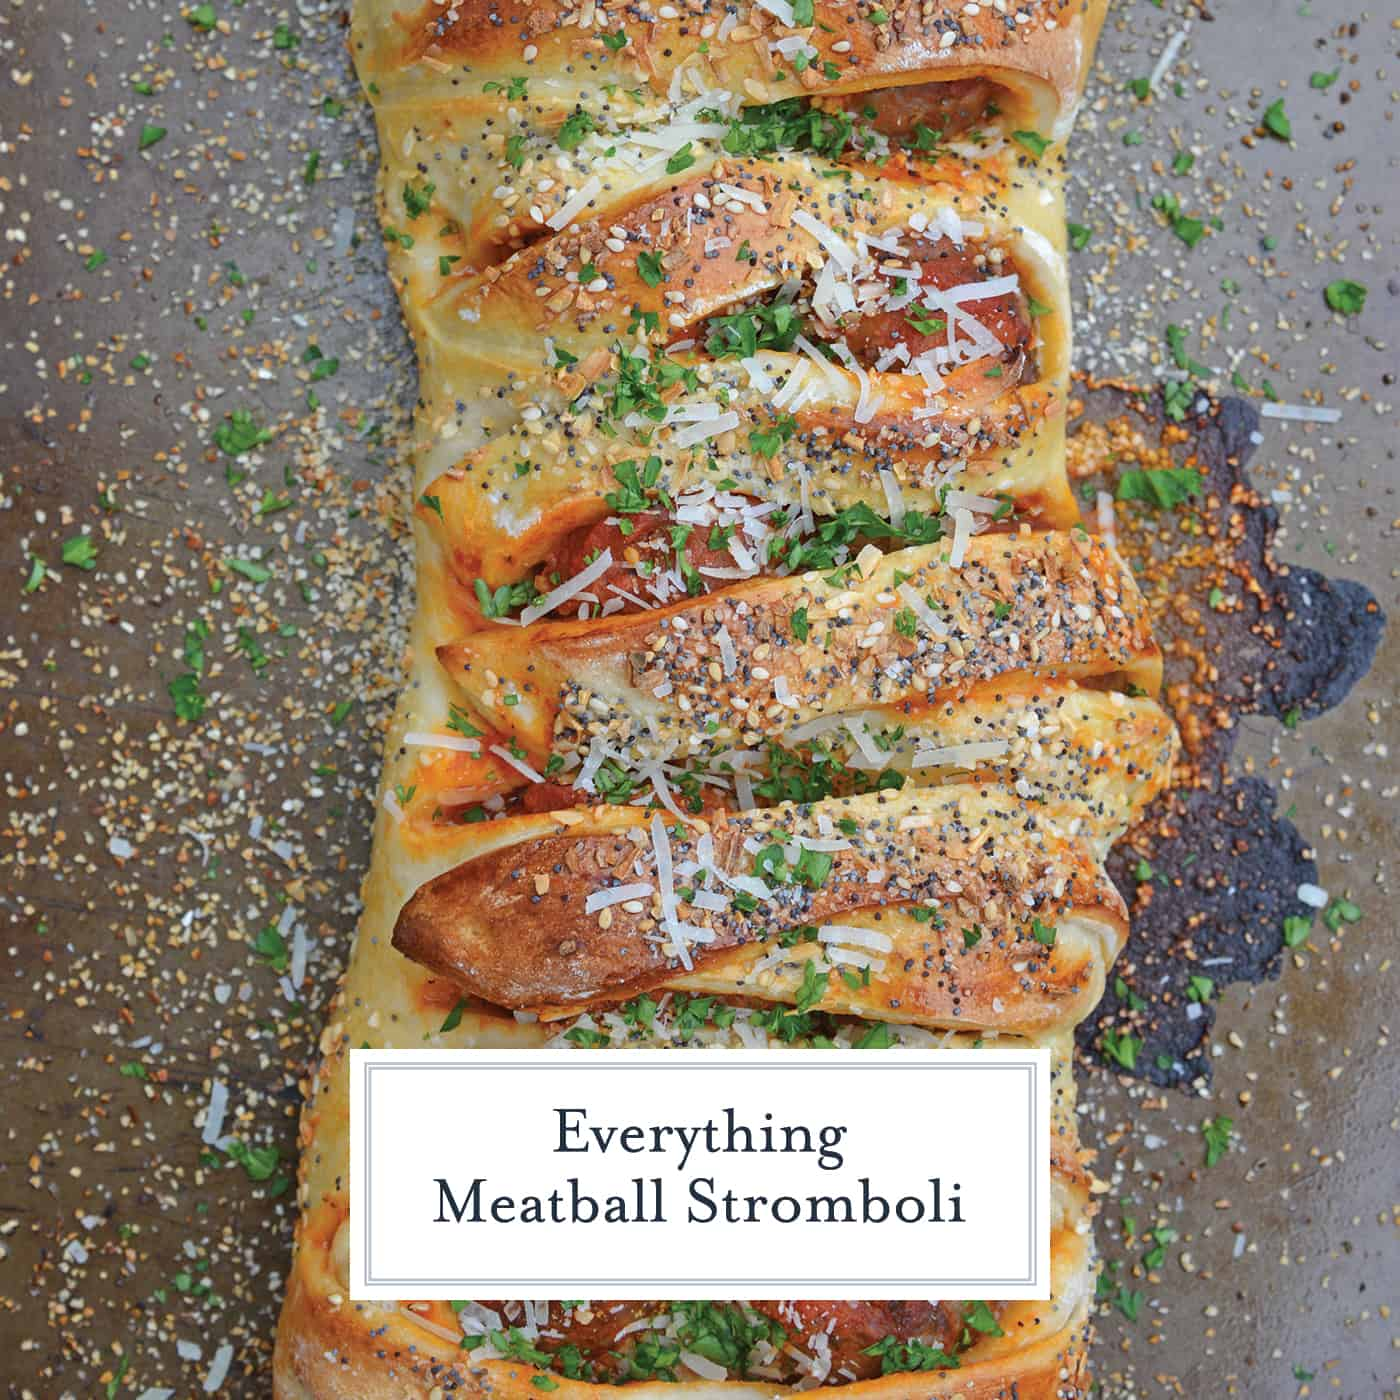 Everything Meatball Stromboli is meatballs, marinara sauce and cheese wrapped in pizza dough topped with everything bagel seasoning. An easy weeknight meal recipe! #howtomakestromboli #strombolirecipe #meatballstromboli www.savoryexperiments.com